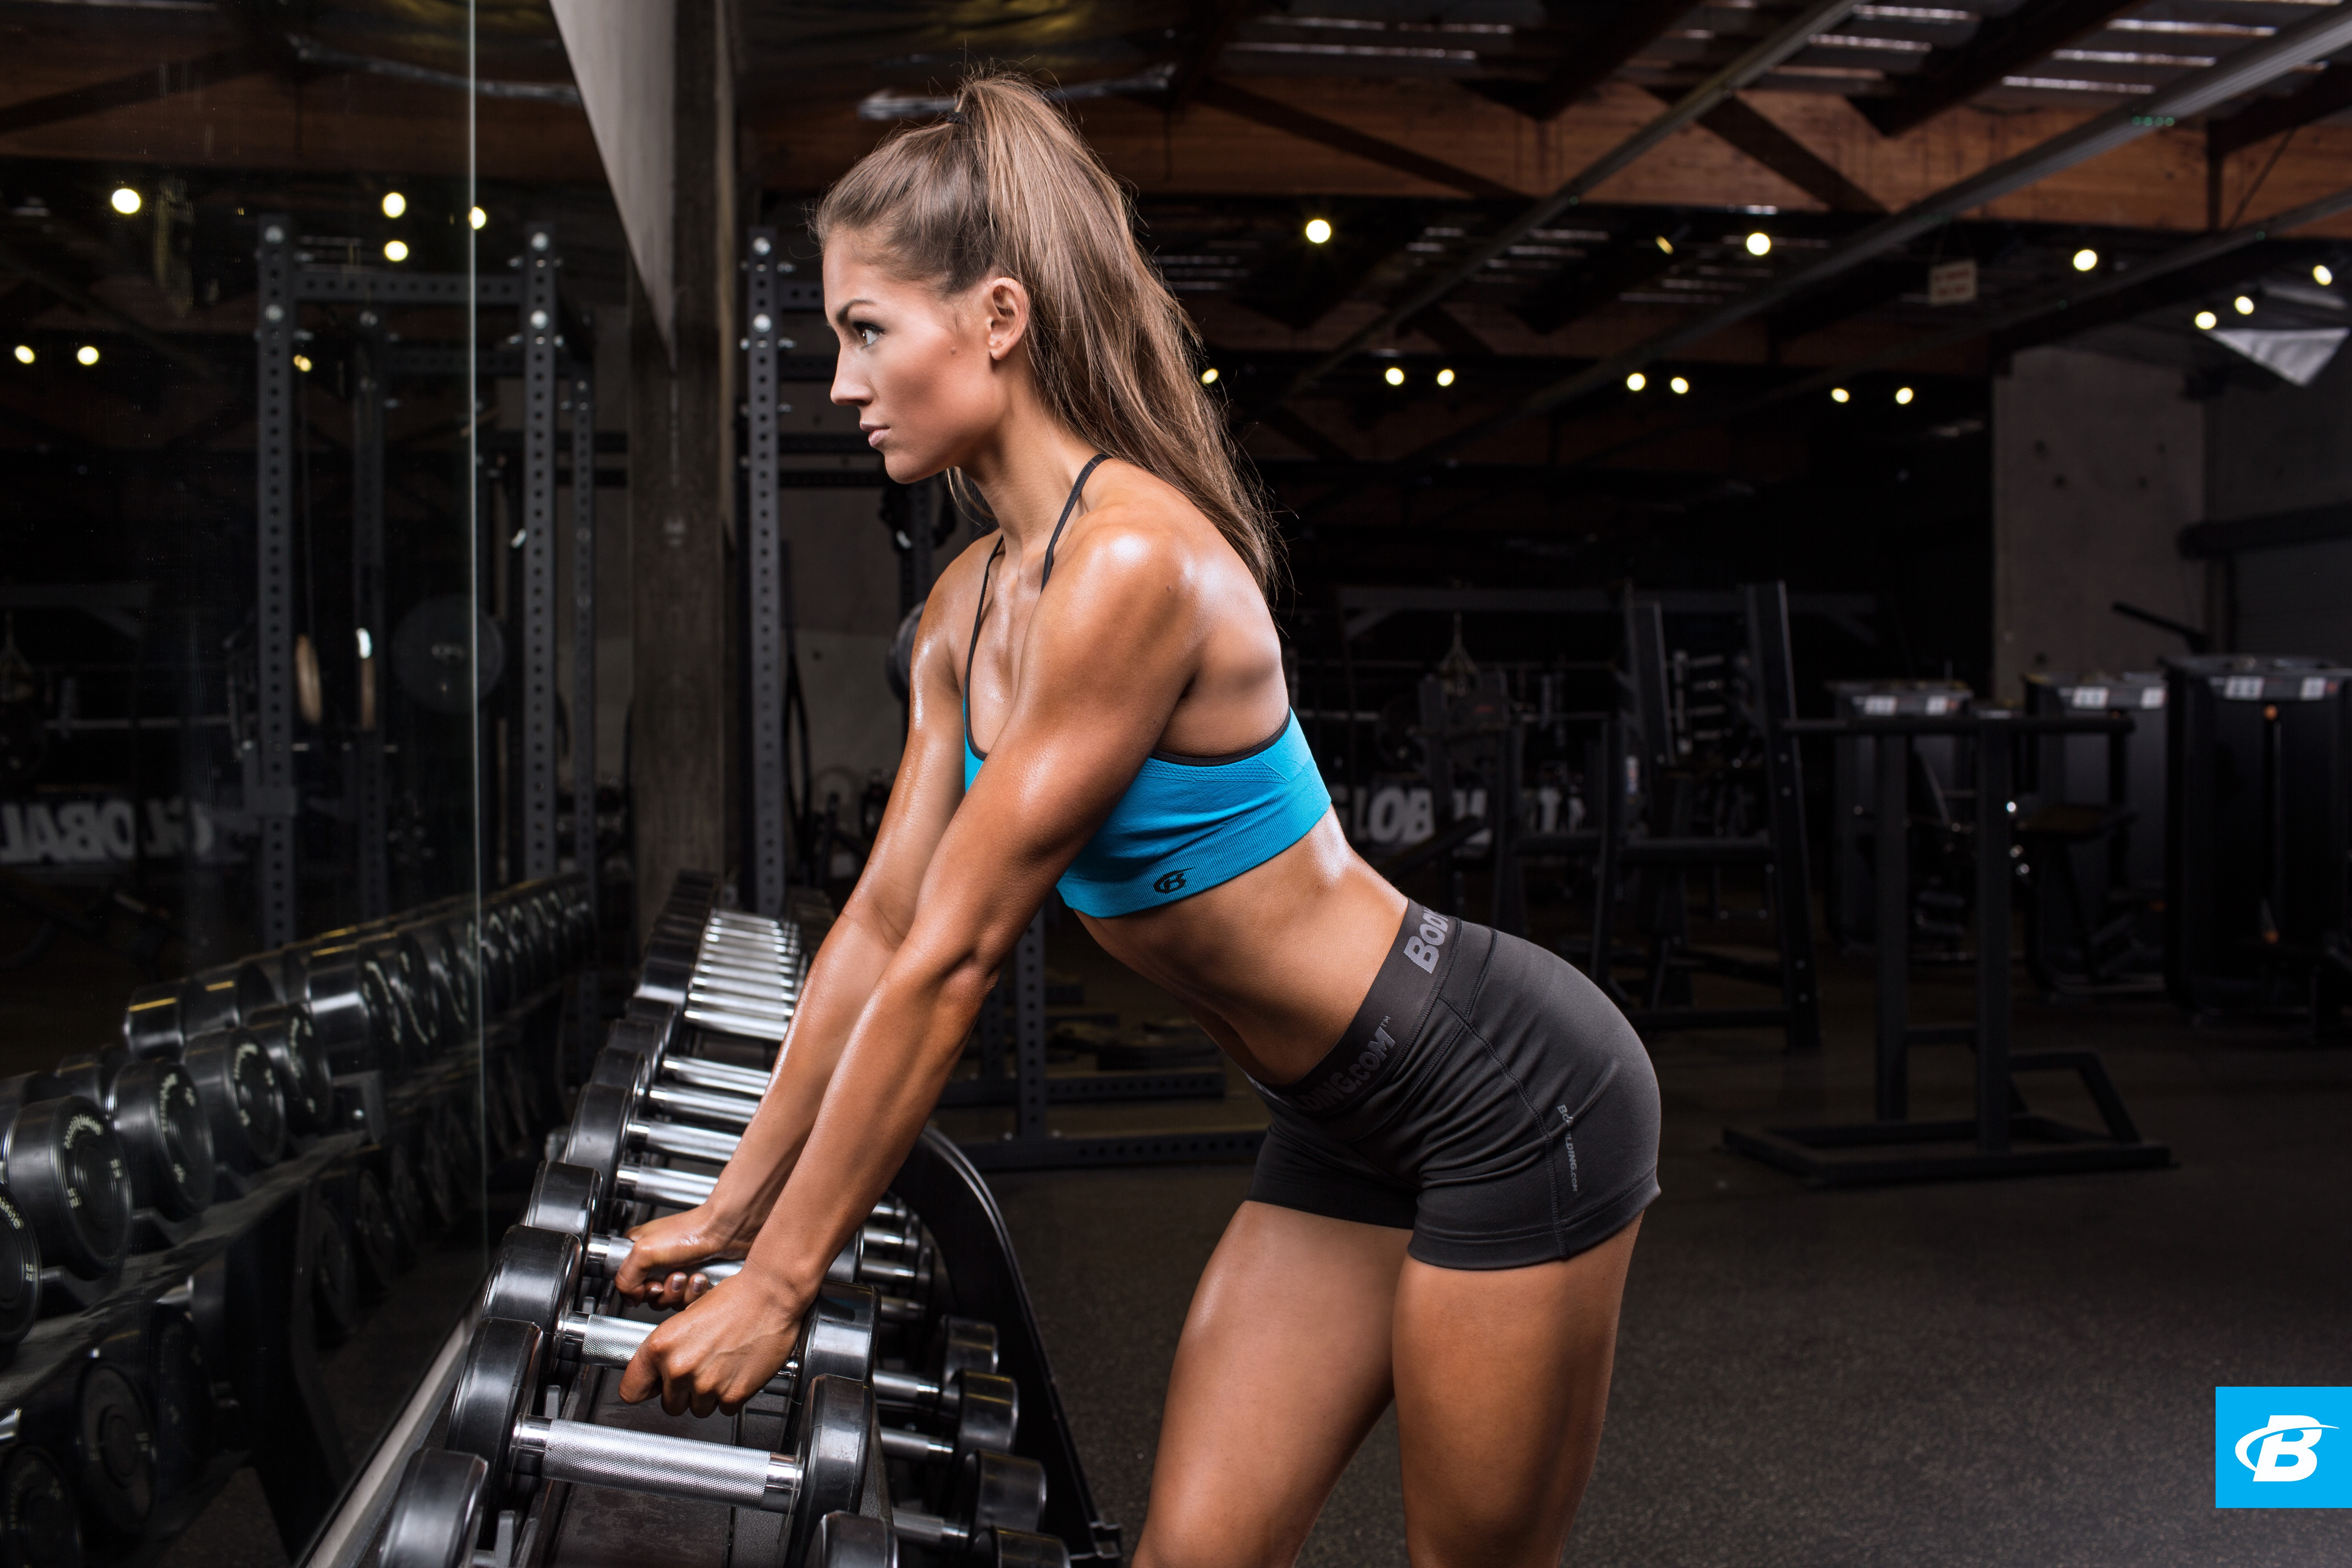 Hot girl gym workout sam's health and fitness